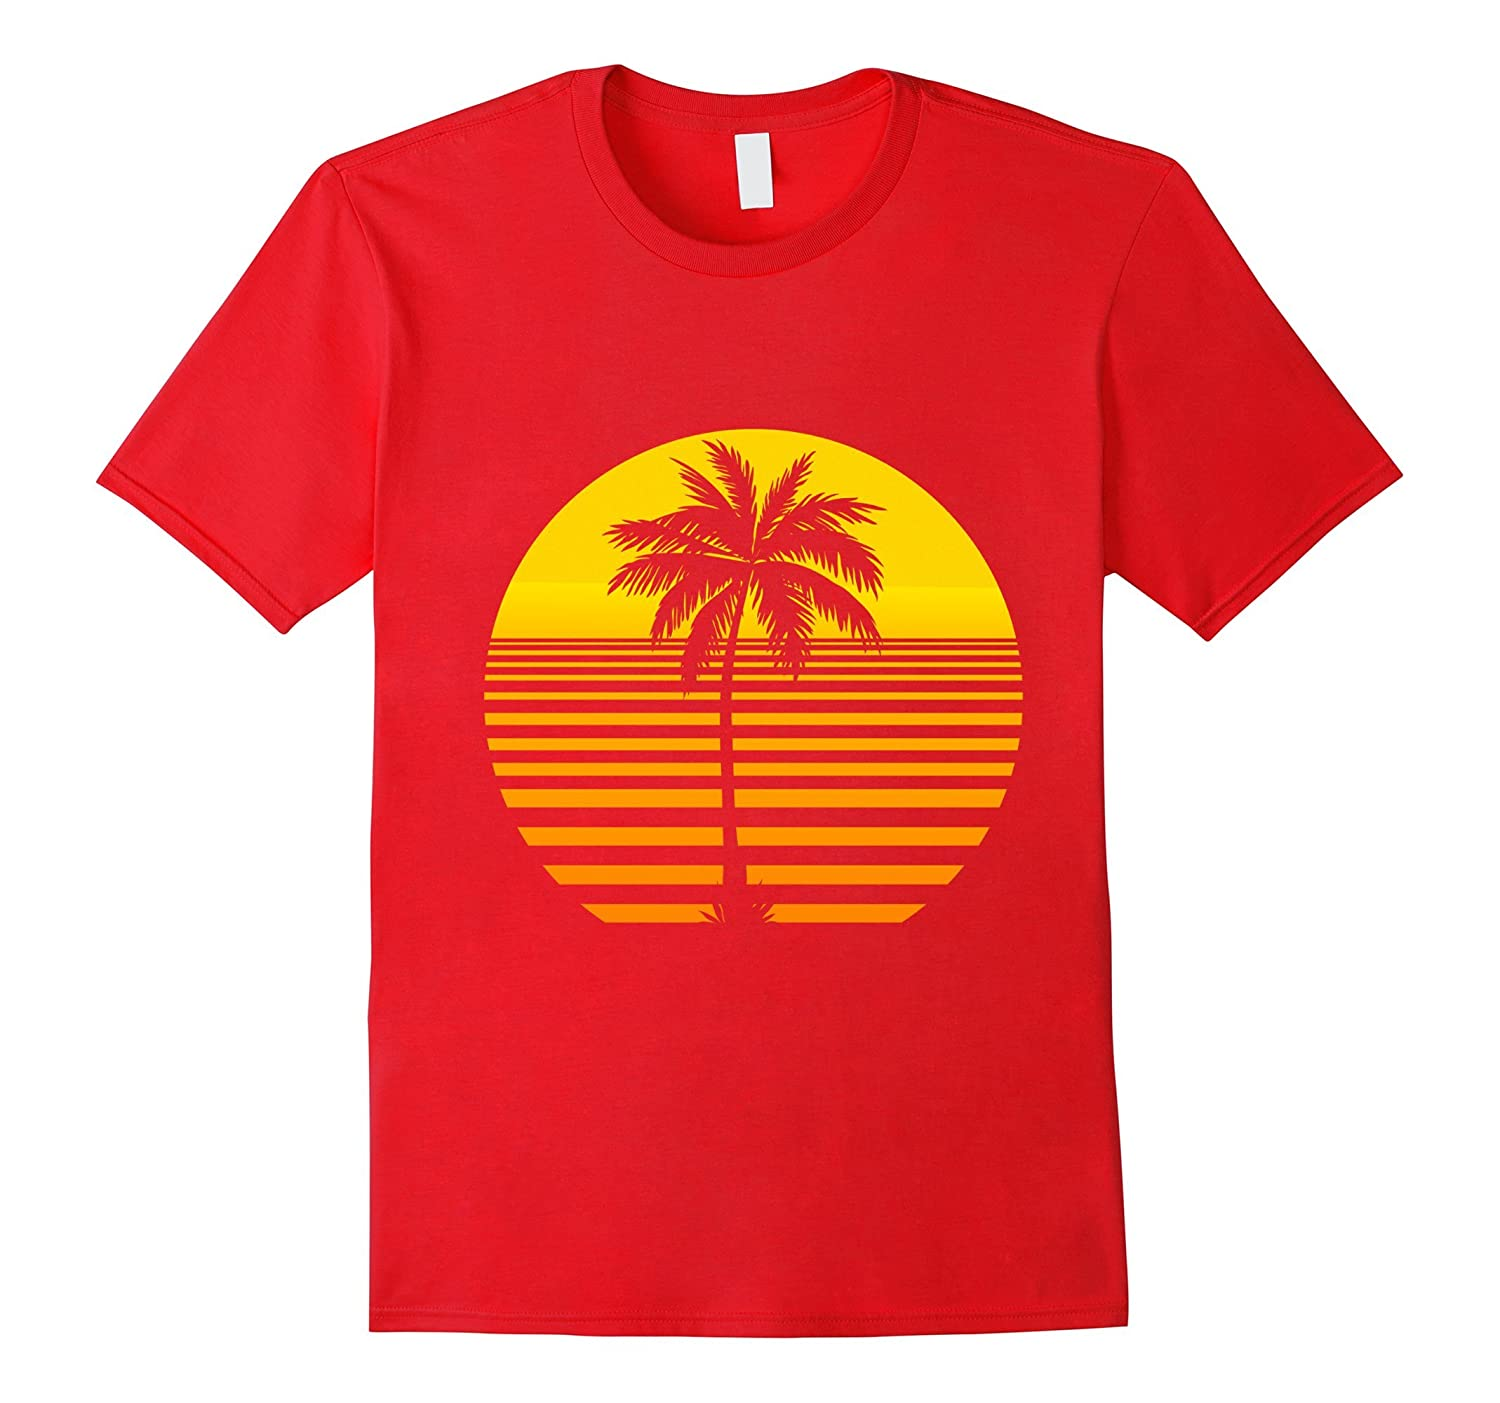 5 Different Colors Available Retro Sun and Palm Tree T-Shirt-ah my shirt one gift